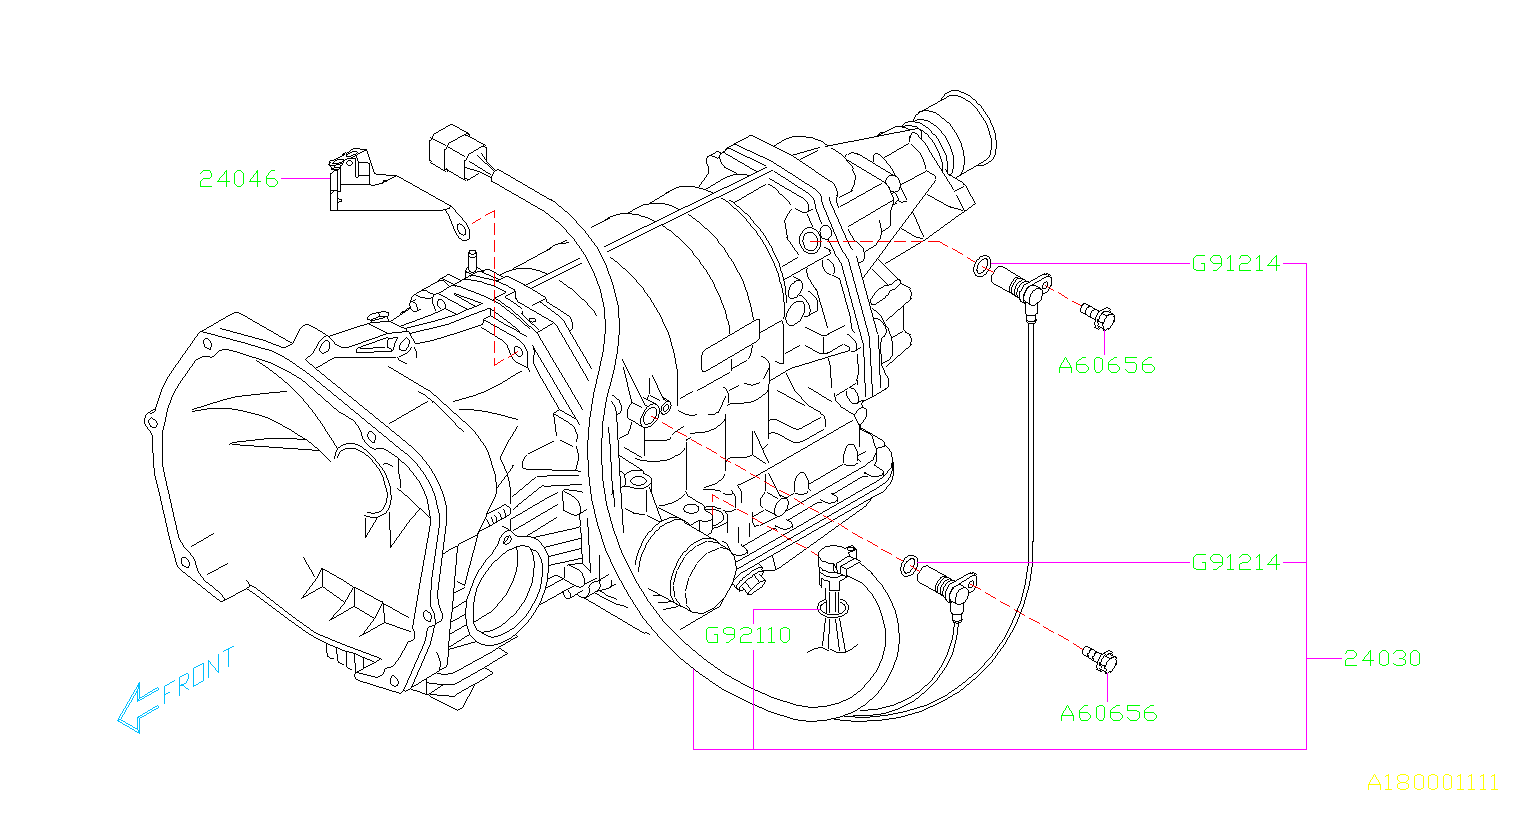 Subaru Forester Sensor and harness assembly transmission